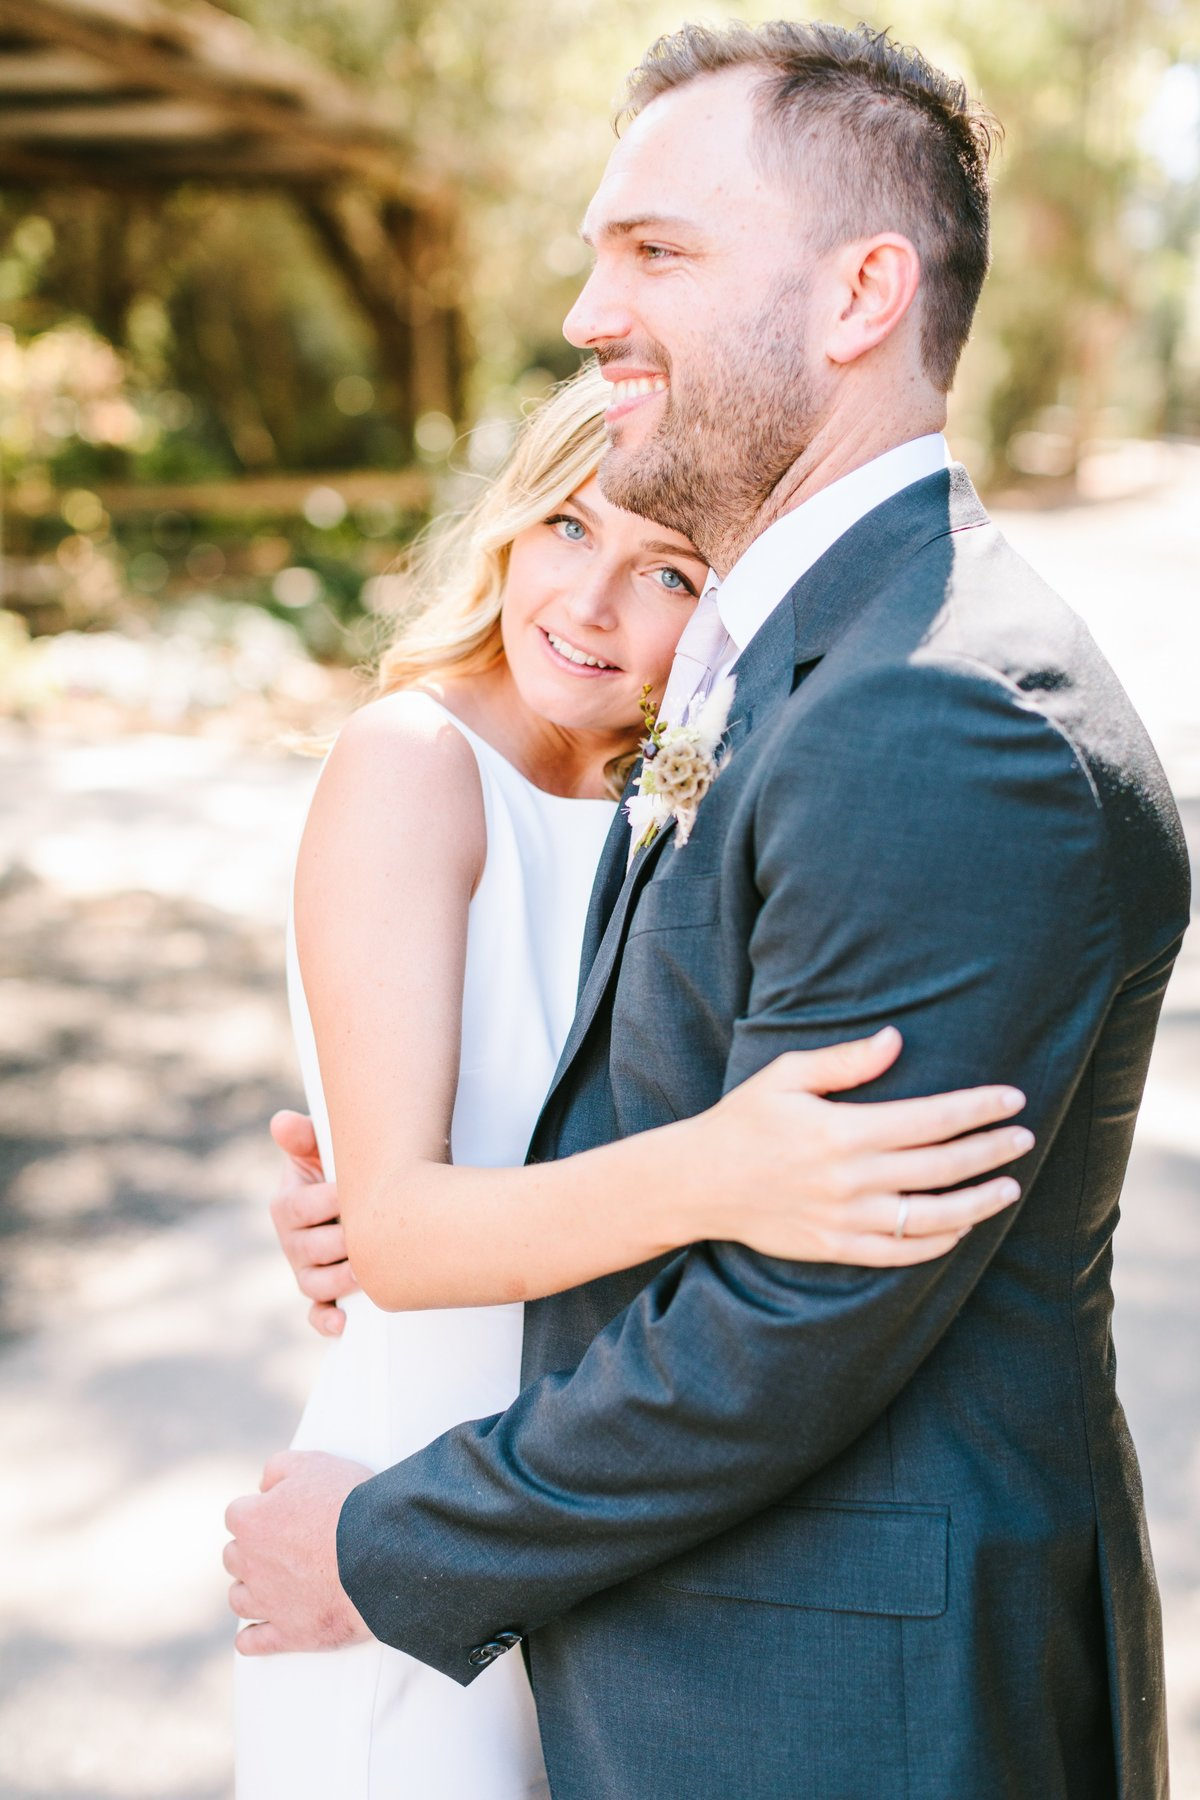 Best California Wedding Photographer-Jodee Debes Photography-103